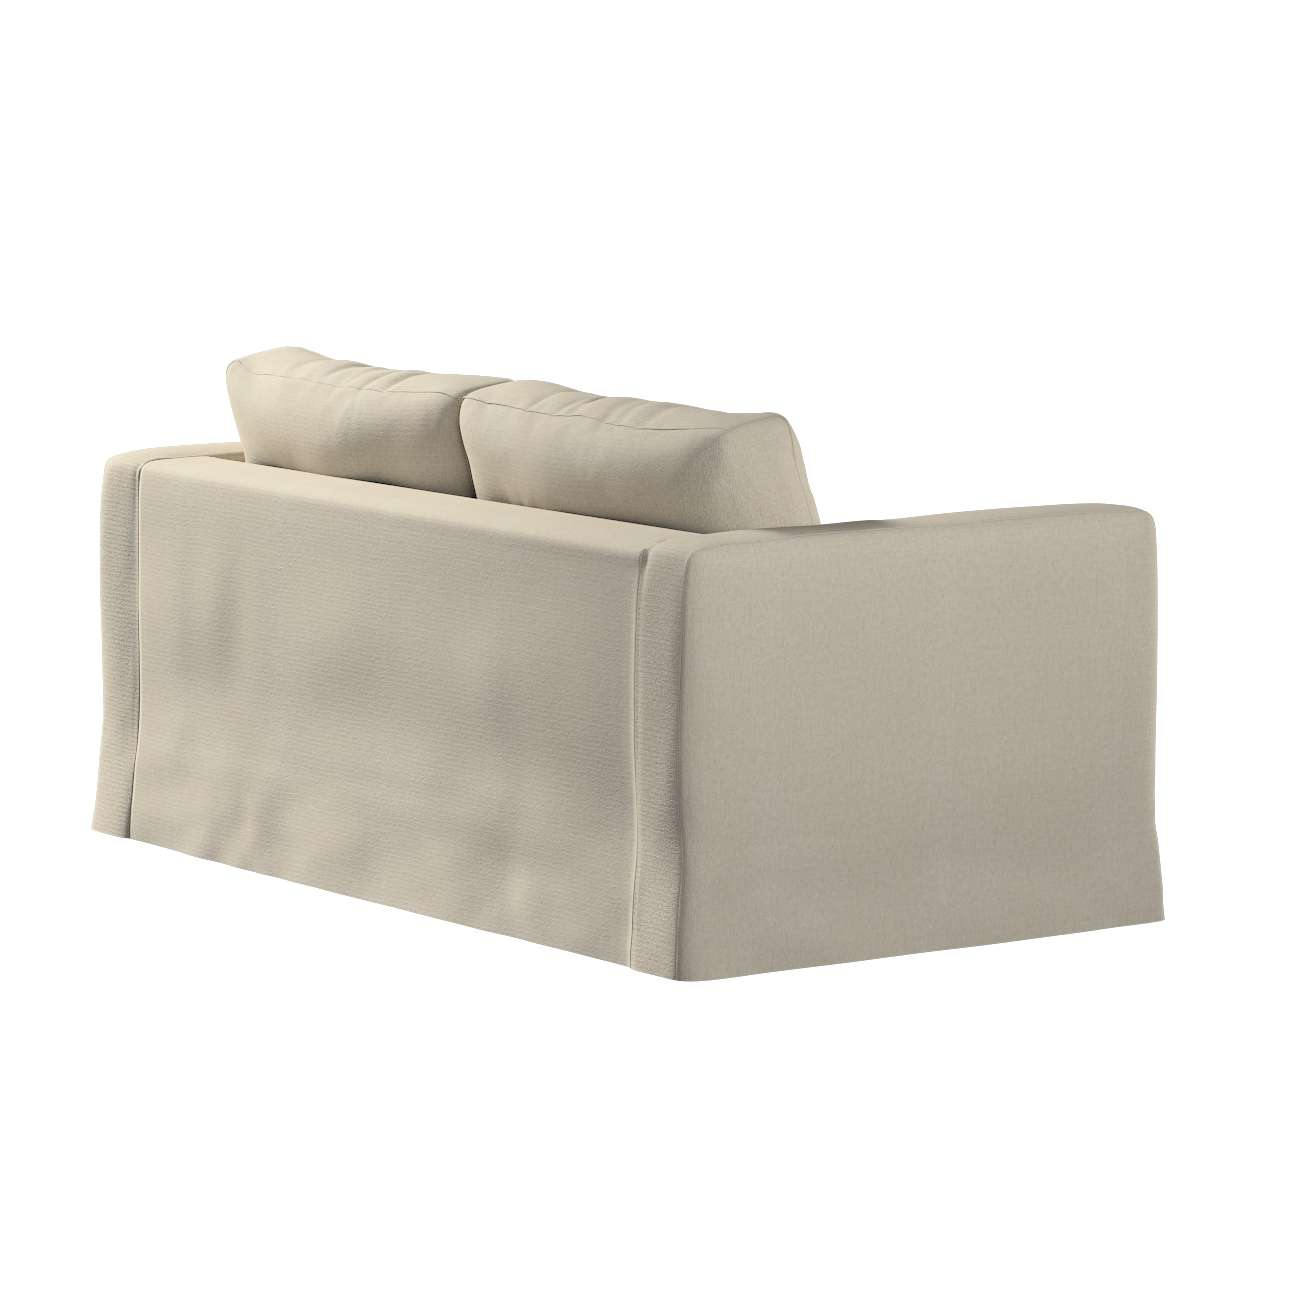 Floor length Karlstad 2-seater sofa cover in collection Etna, fabric: 702-39